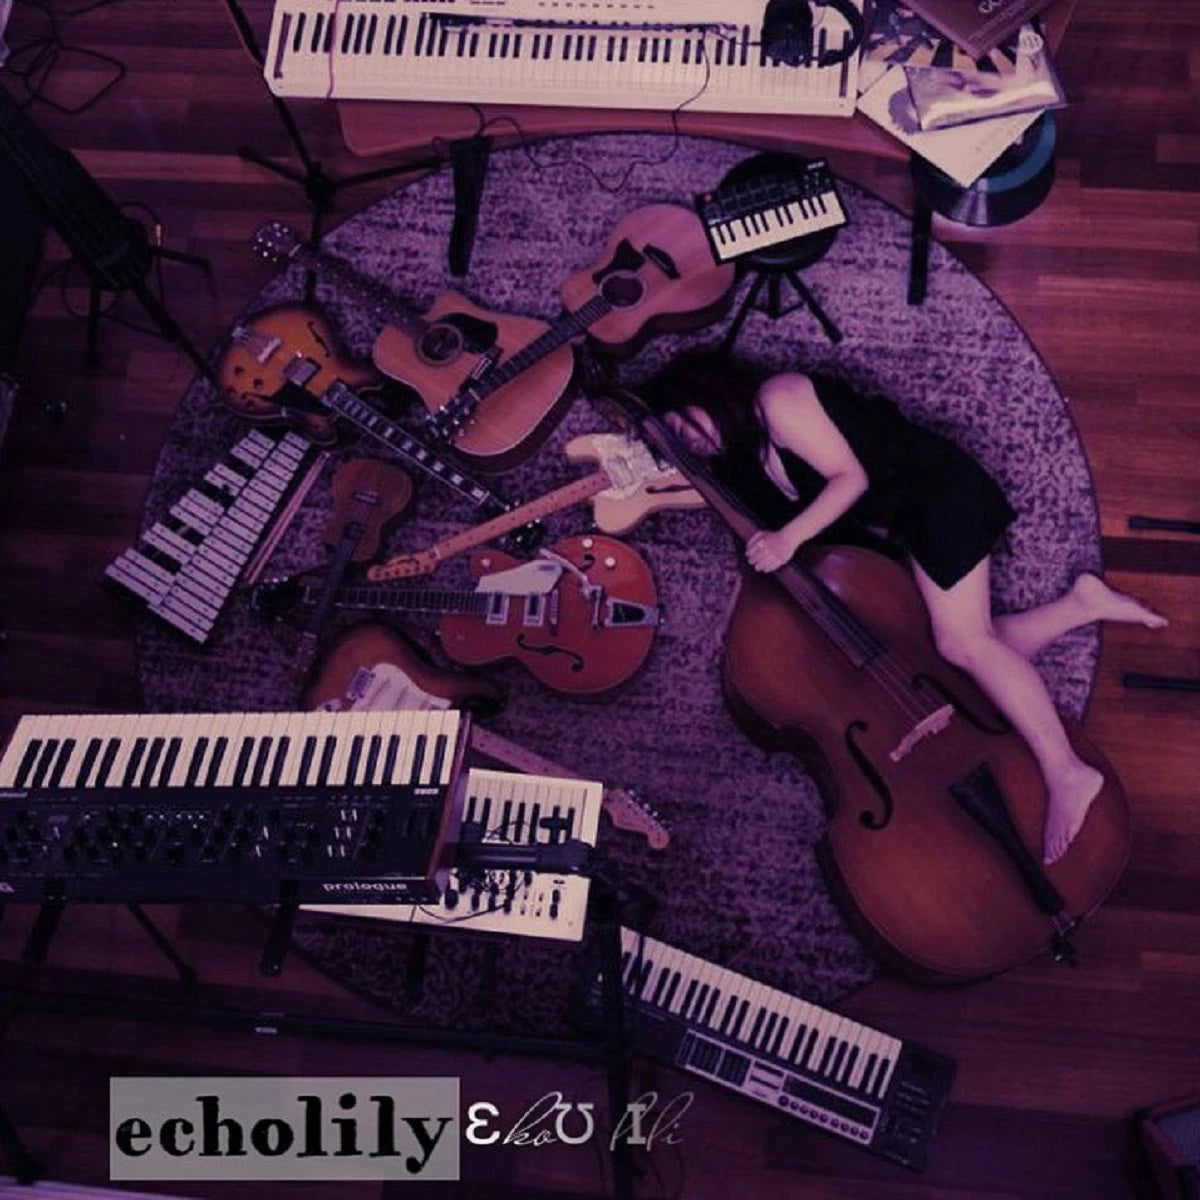 An Interview with echolily